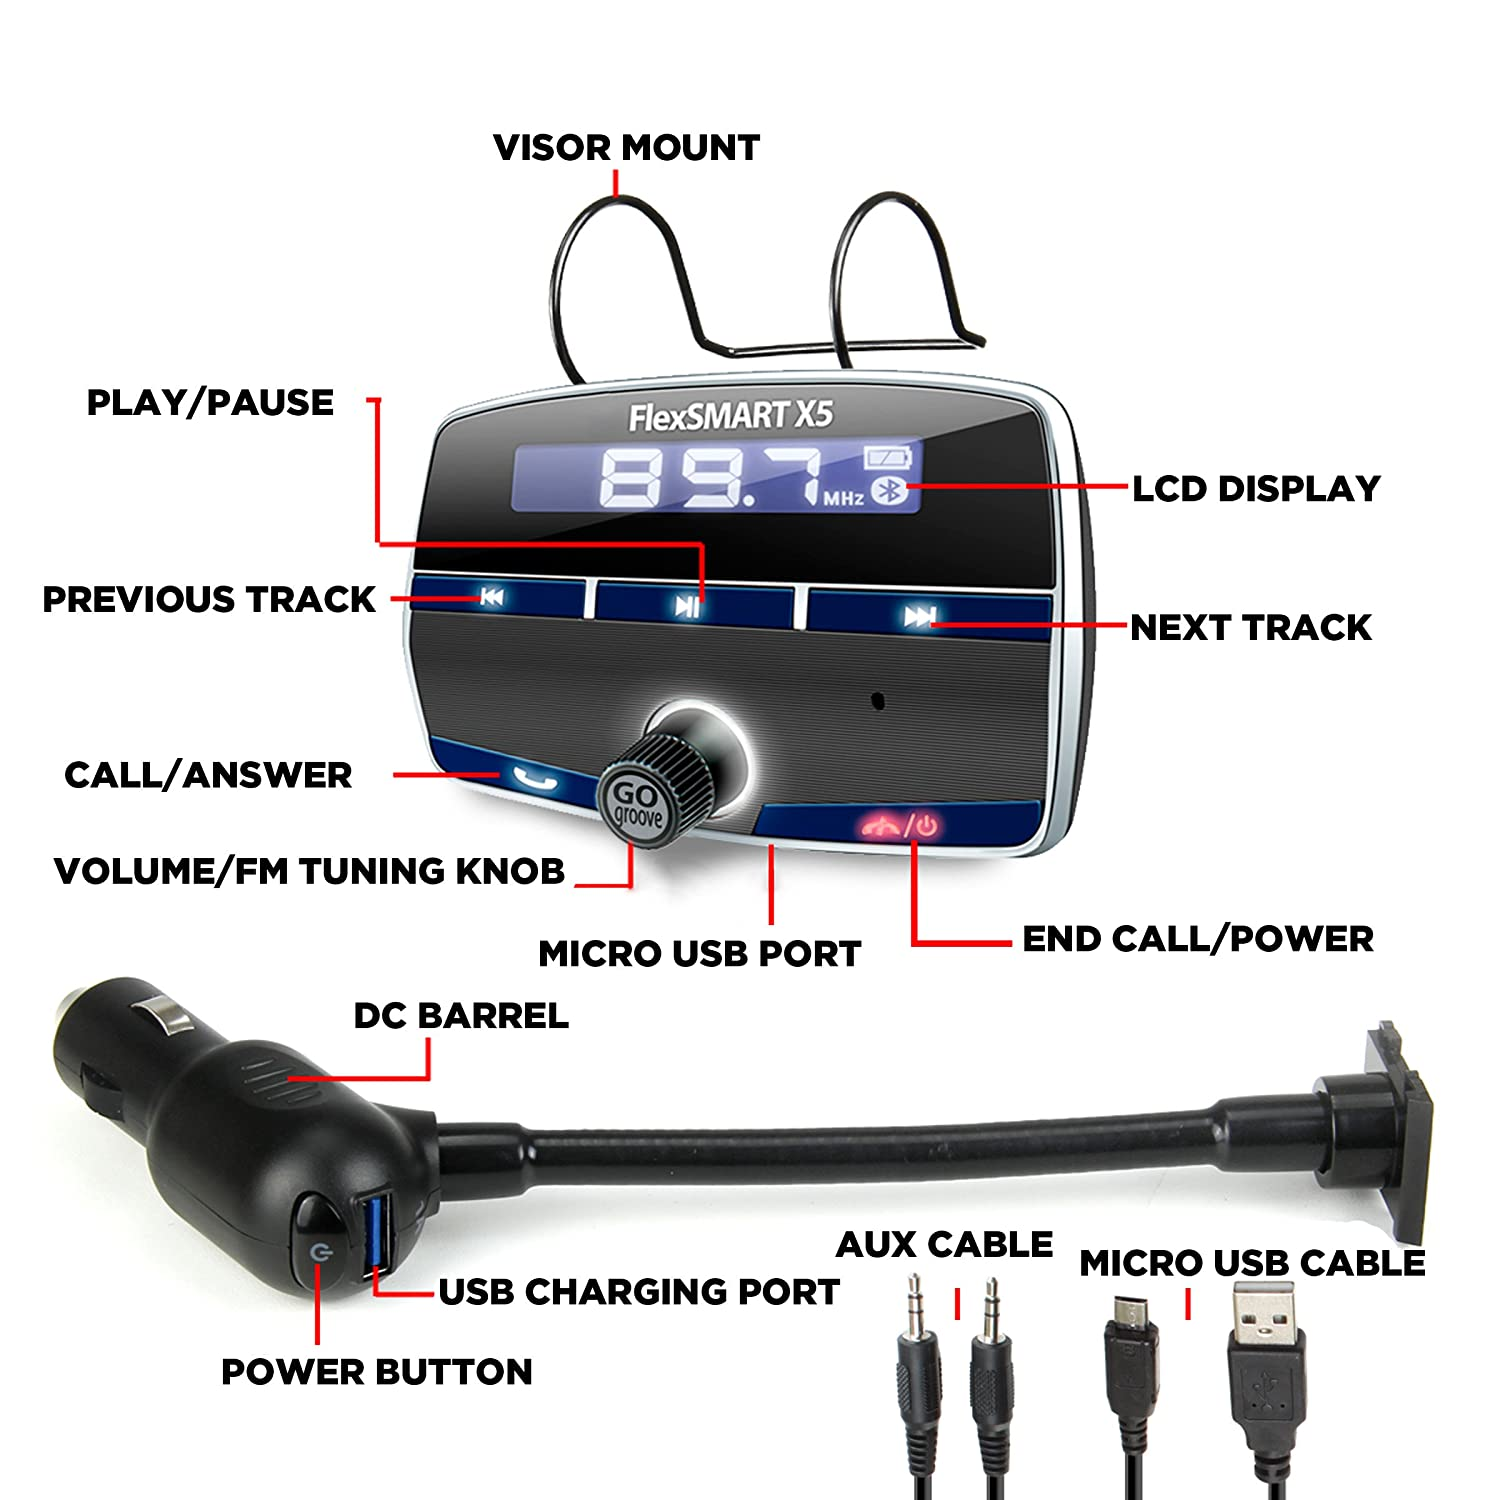 USB Charging and Multiple Mounting Options Android Compatible with iPhone GOgroove FlexSMART X5 Bluetooth FM Transmitter Car Kit with Hands-Free Calling Tablets and More Bluetooth Devices GGFSX50100BKUS/_CE01